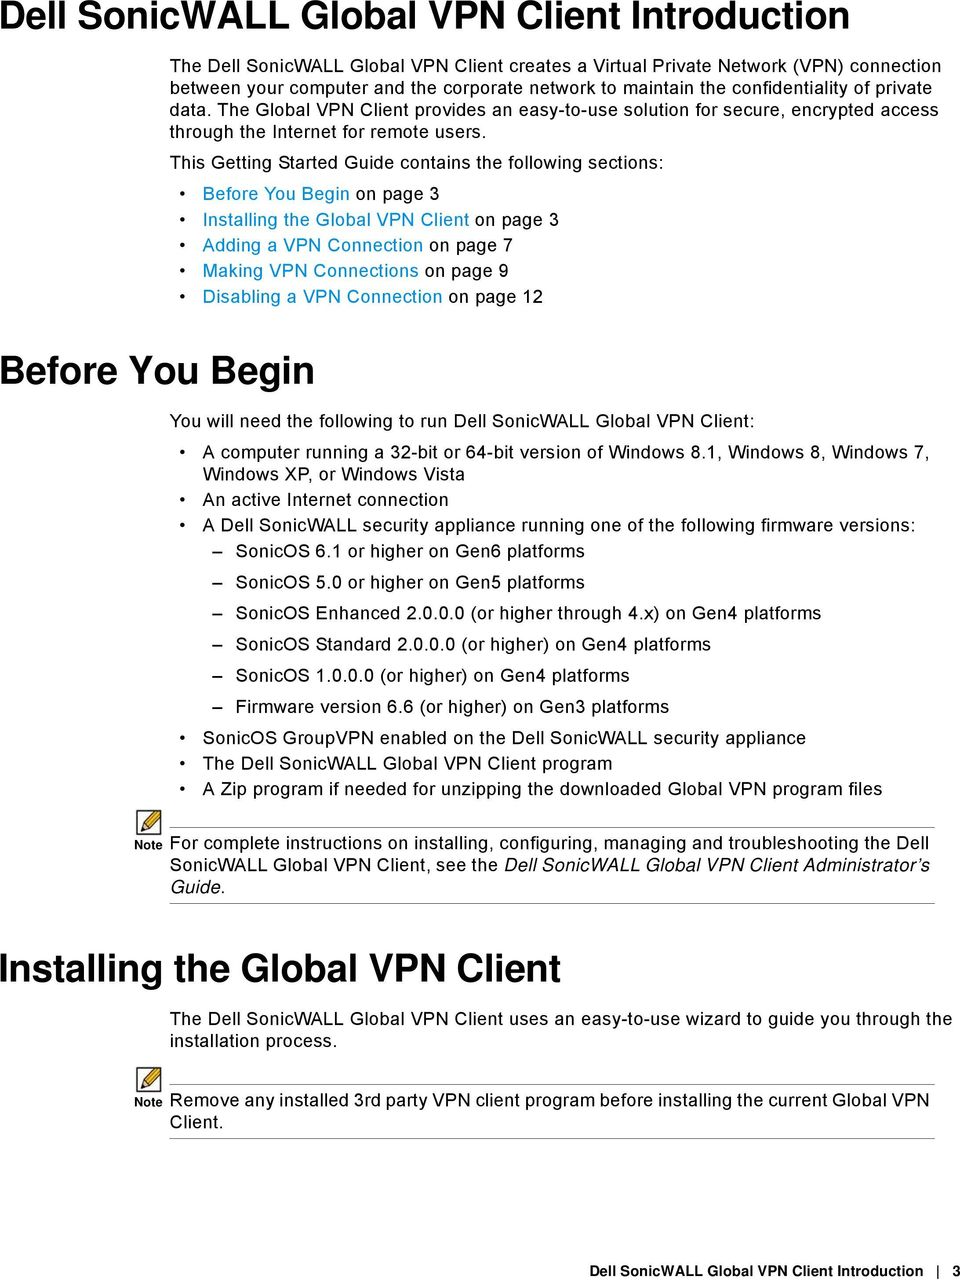 This Getting Started Guide contains the following sections: Before You Begin on page 3 Installing the Global VPN Client on page 3 Adding a VPN Connection on page 7 Making VPN Connections on page 9